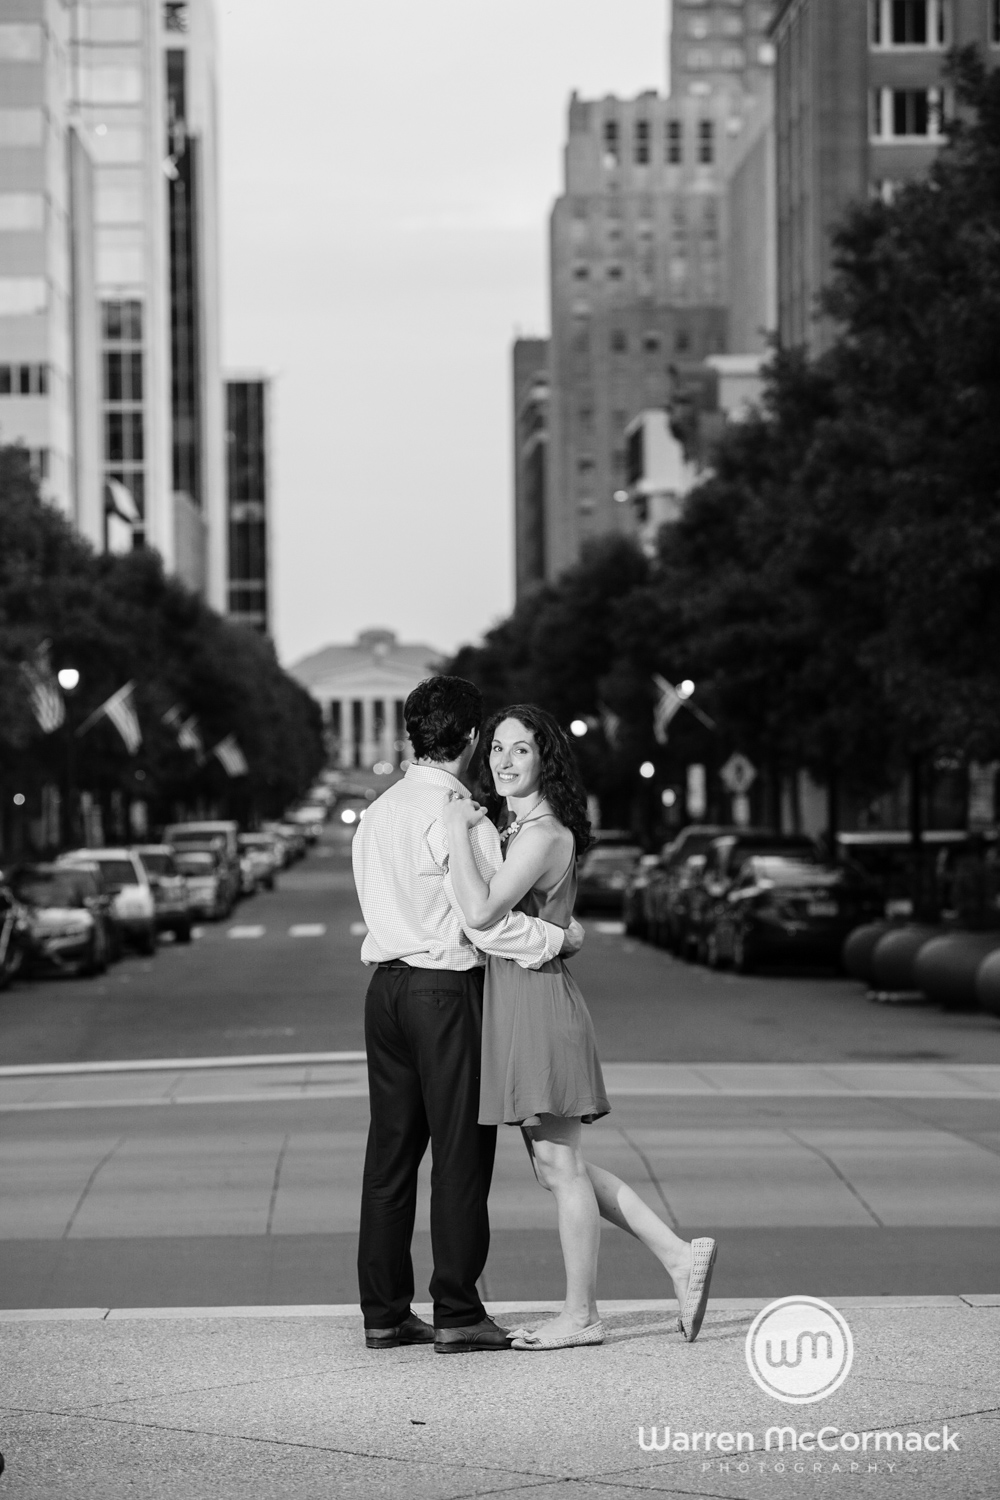 Raleigh Wedding Photography-Warren McCormack Photography20.jpg